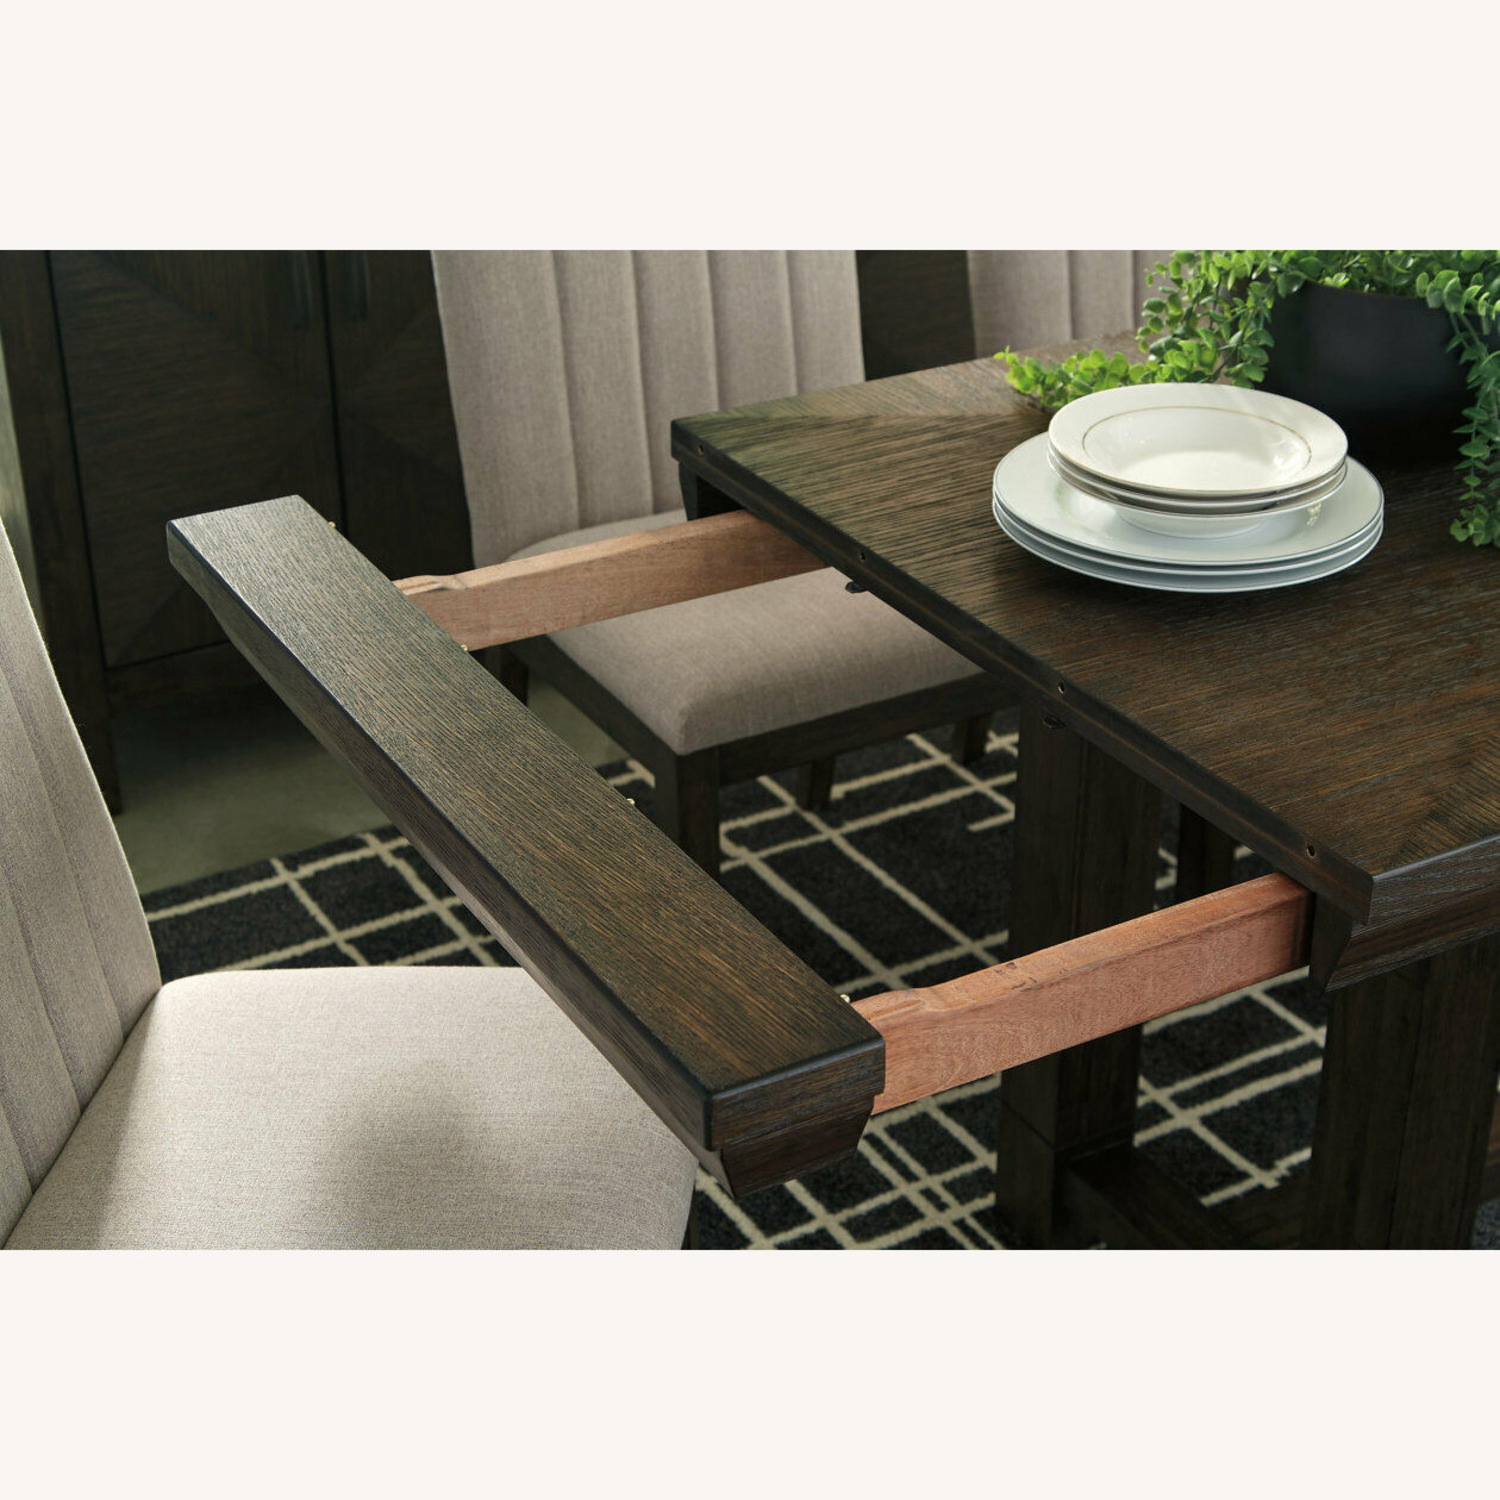 Ashley Furniture Dellbeck Extendable Dining Table - image-9